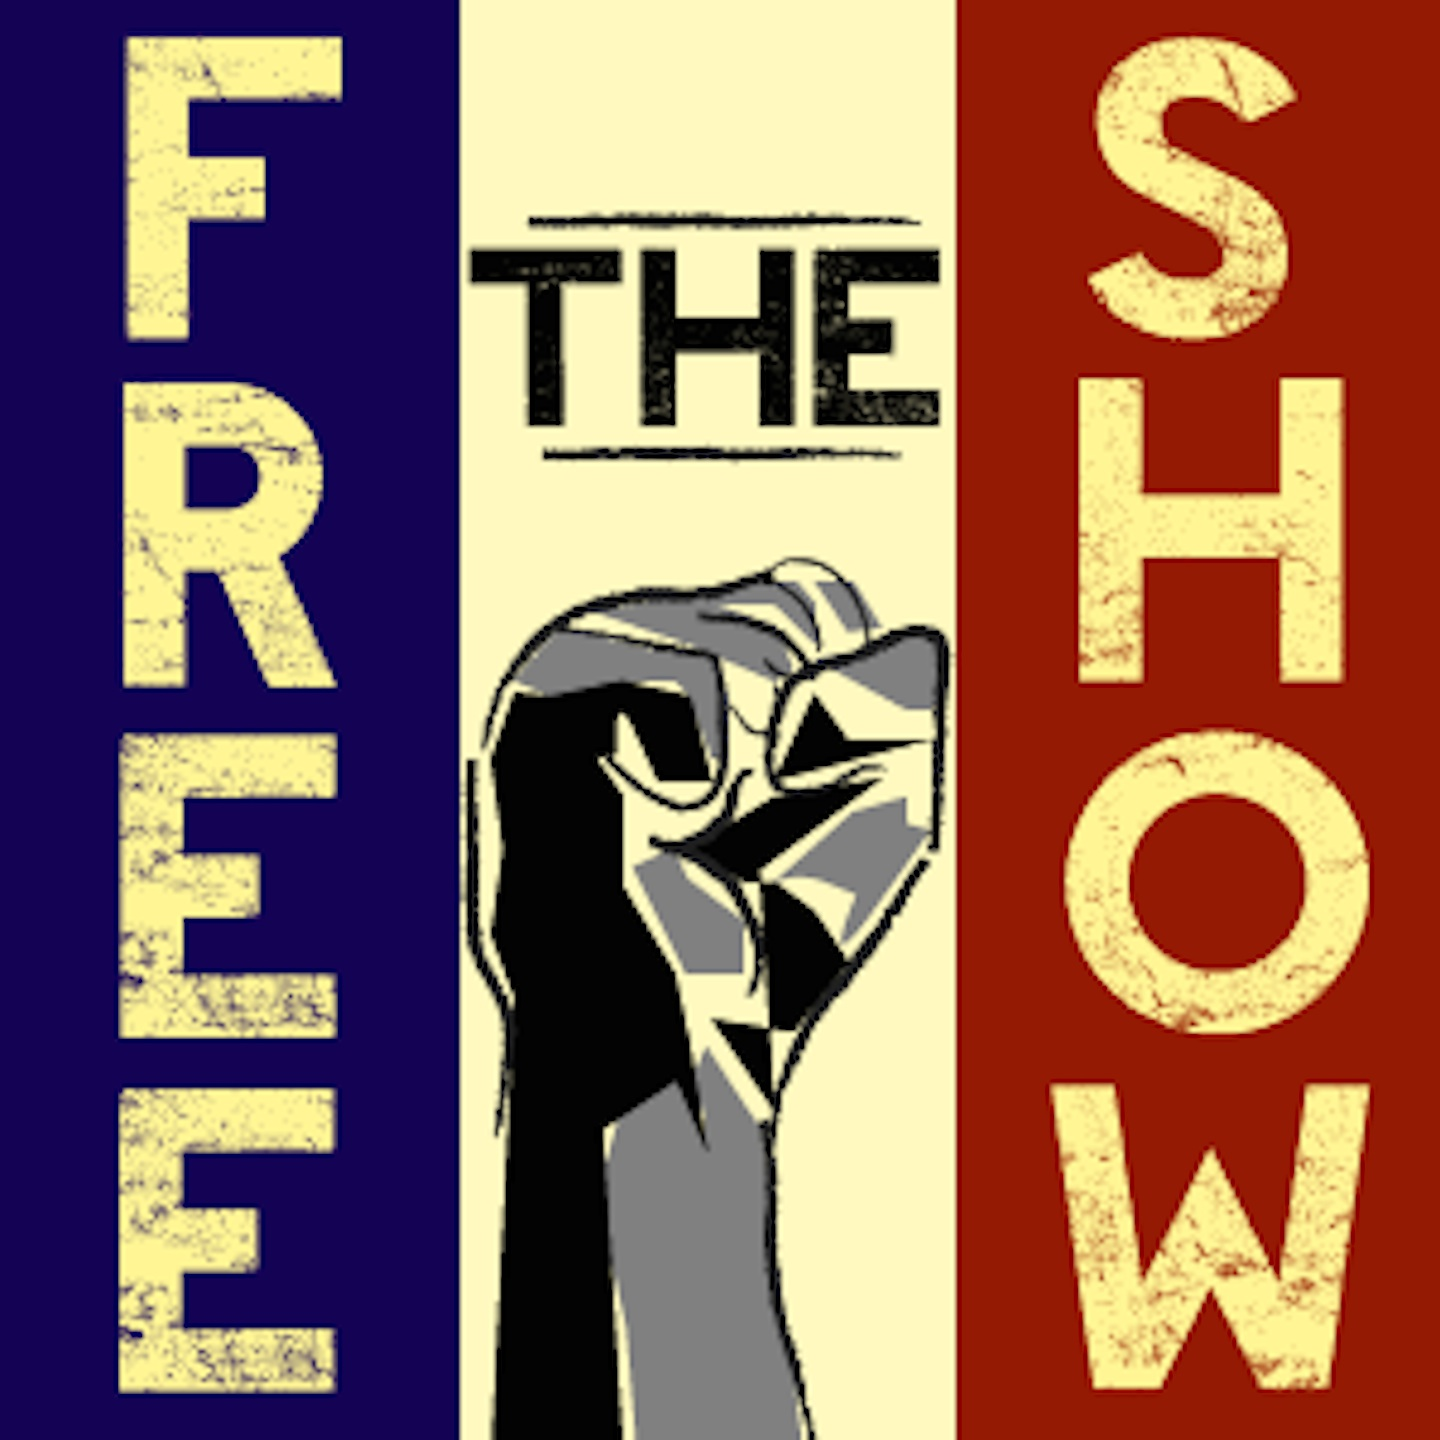 FREE THE SHOW